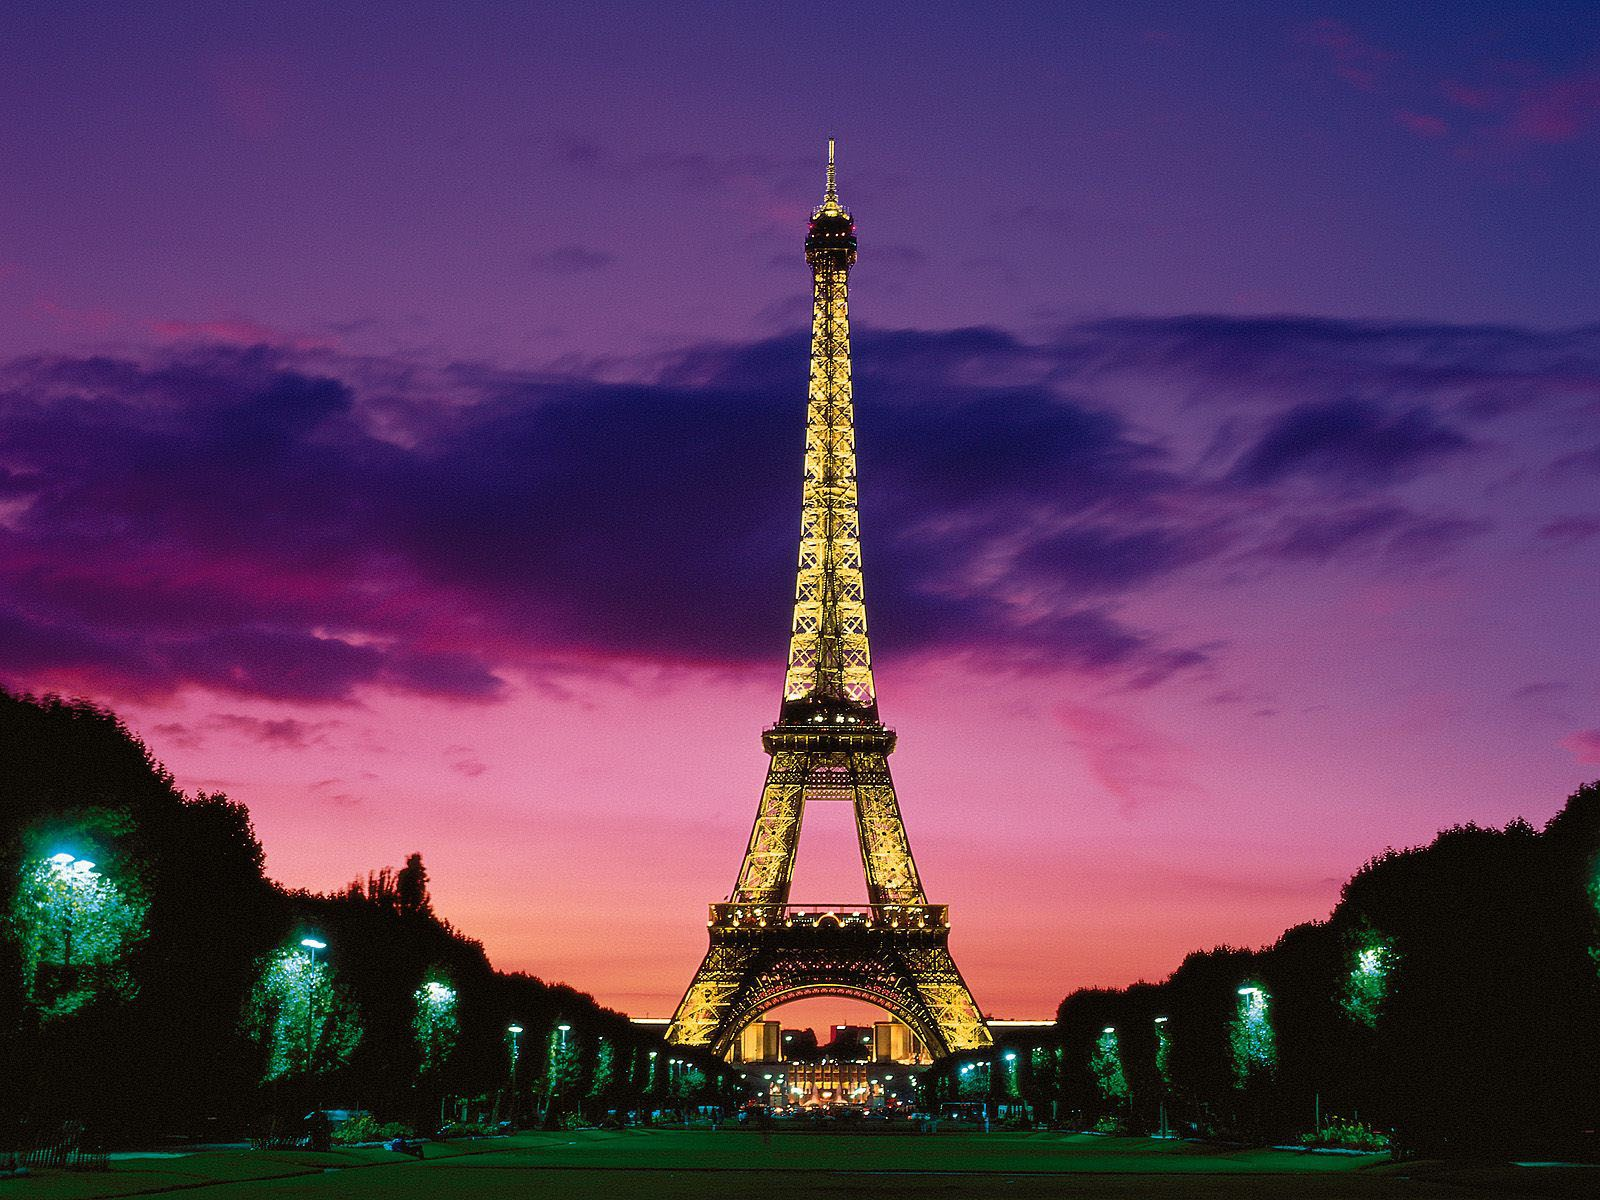 Gambar wallpaper menara eiffel paris reviewwalls dp wallpaper menara eiffel altavistaventures Image collections